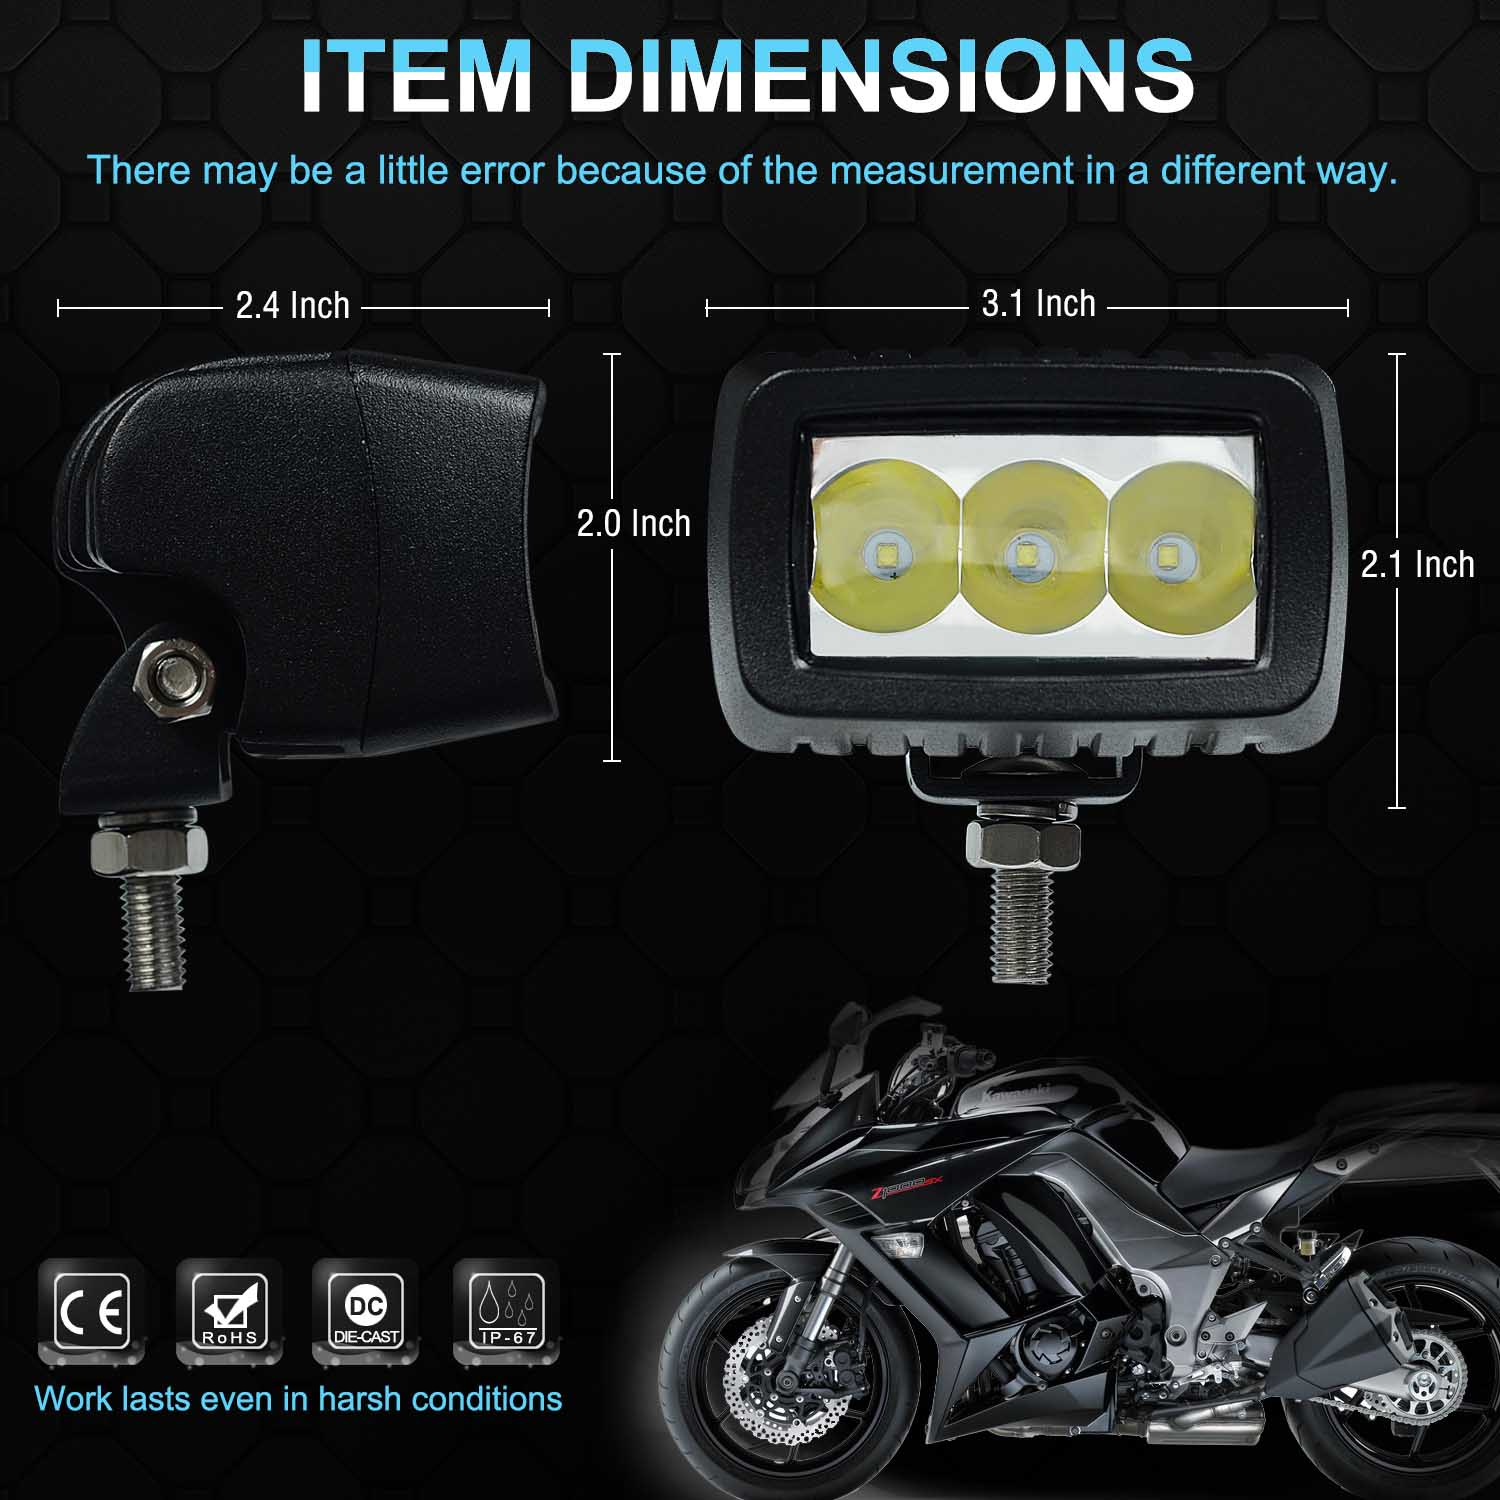 guide our lighting graphic motorcycles vehicle motorcycle headlight retro into directly and to passing cruiser denali lamp specific led housings lights your solutions electronics beam sealed mounting original modules i mount denal